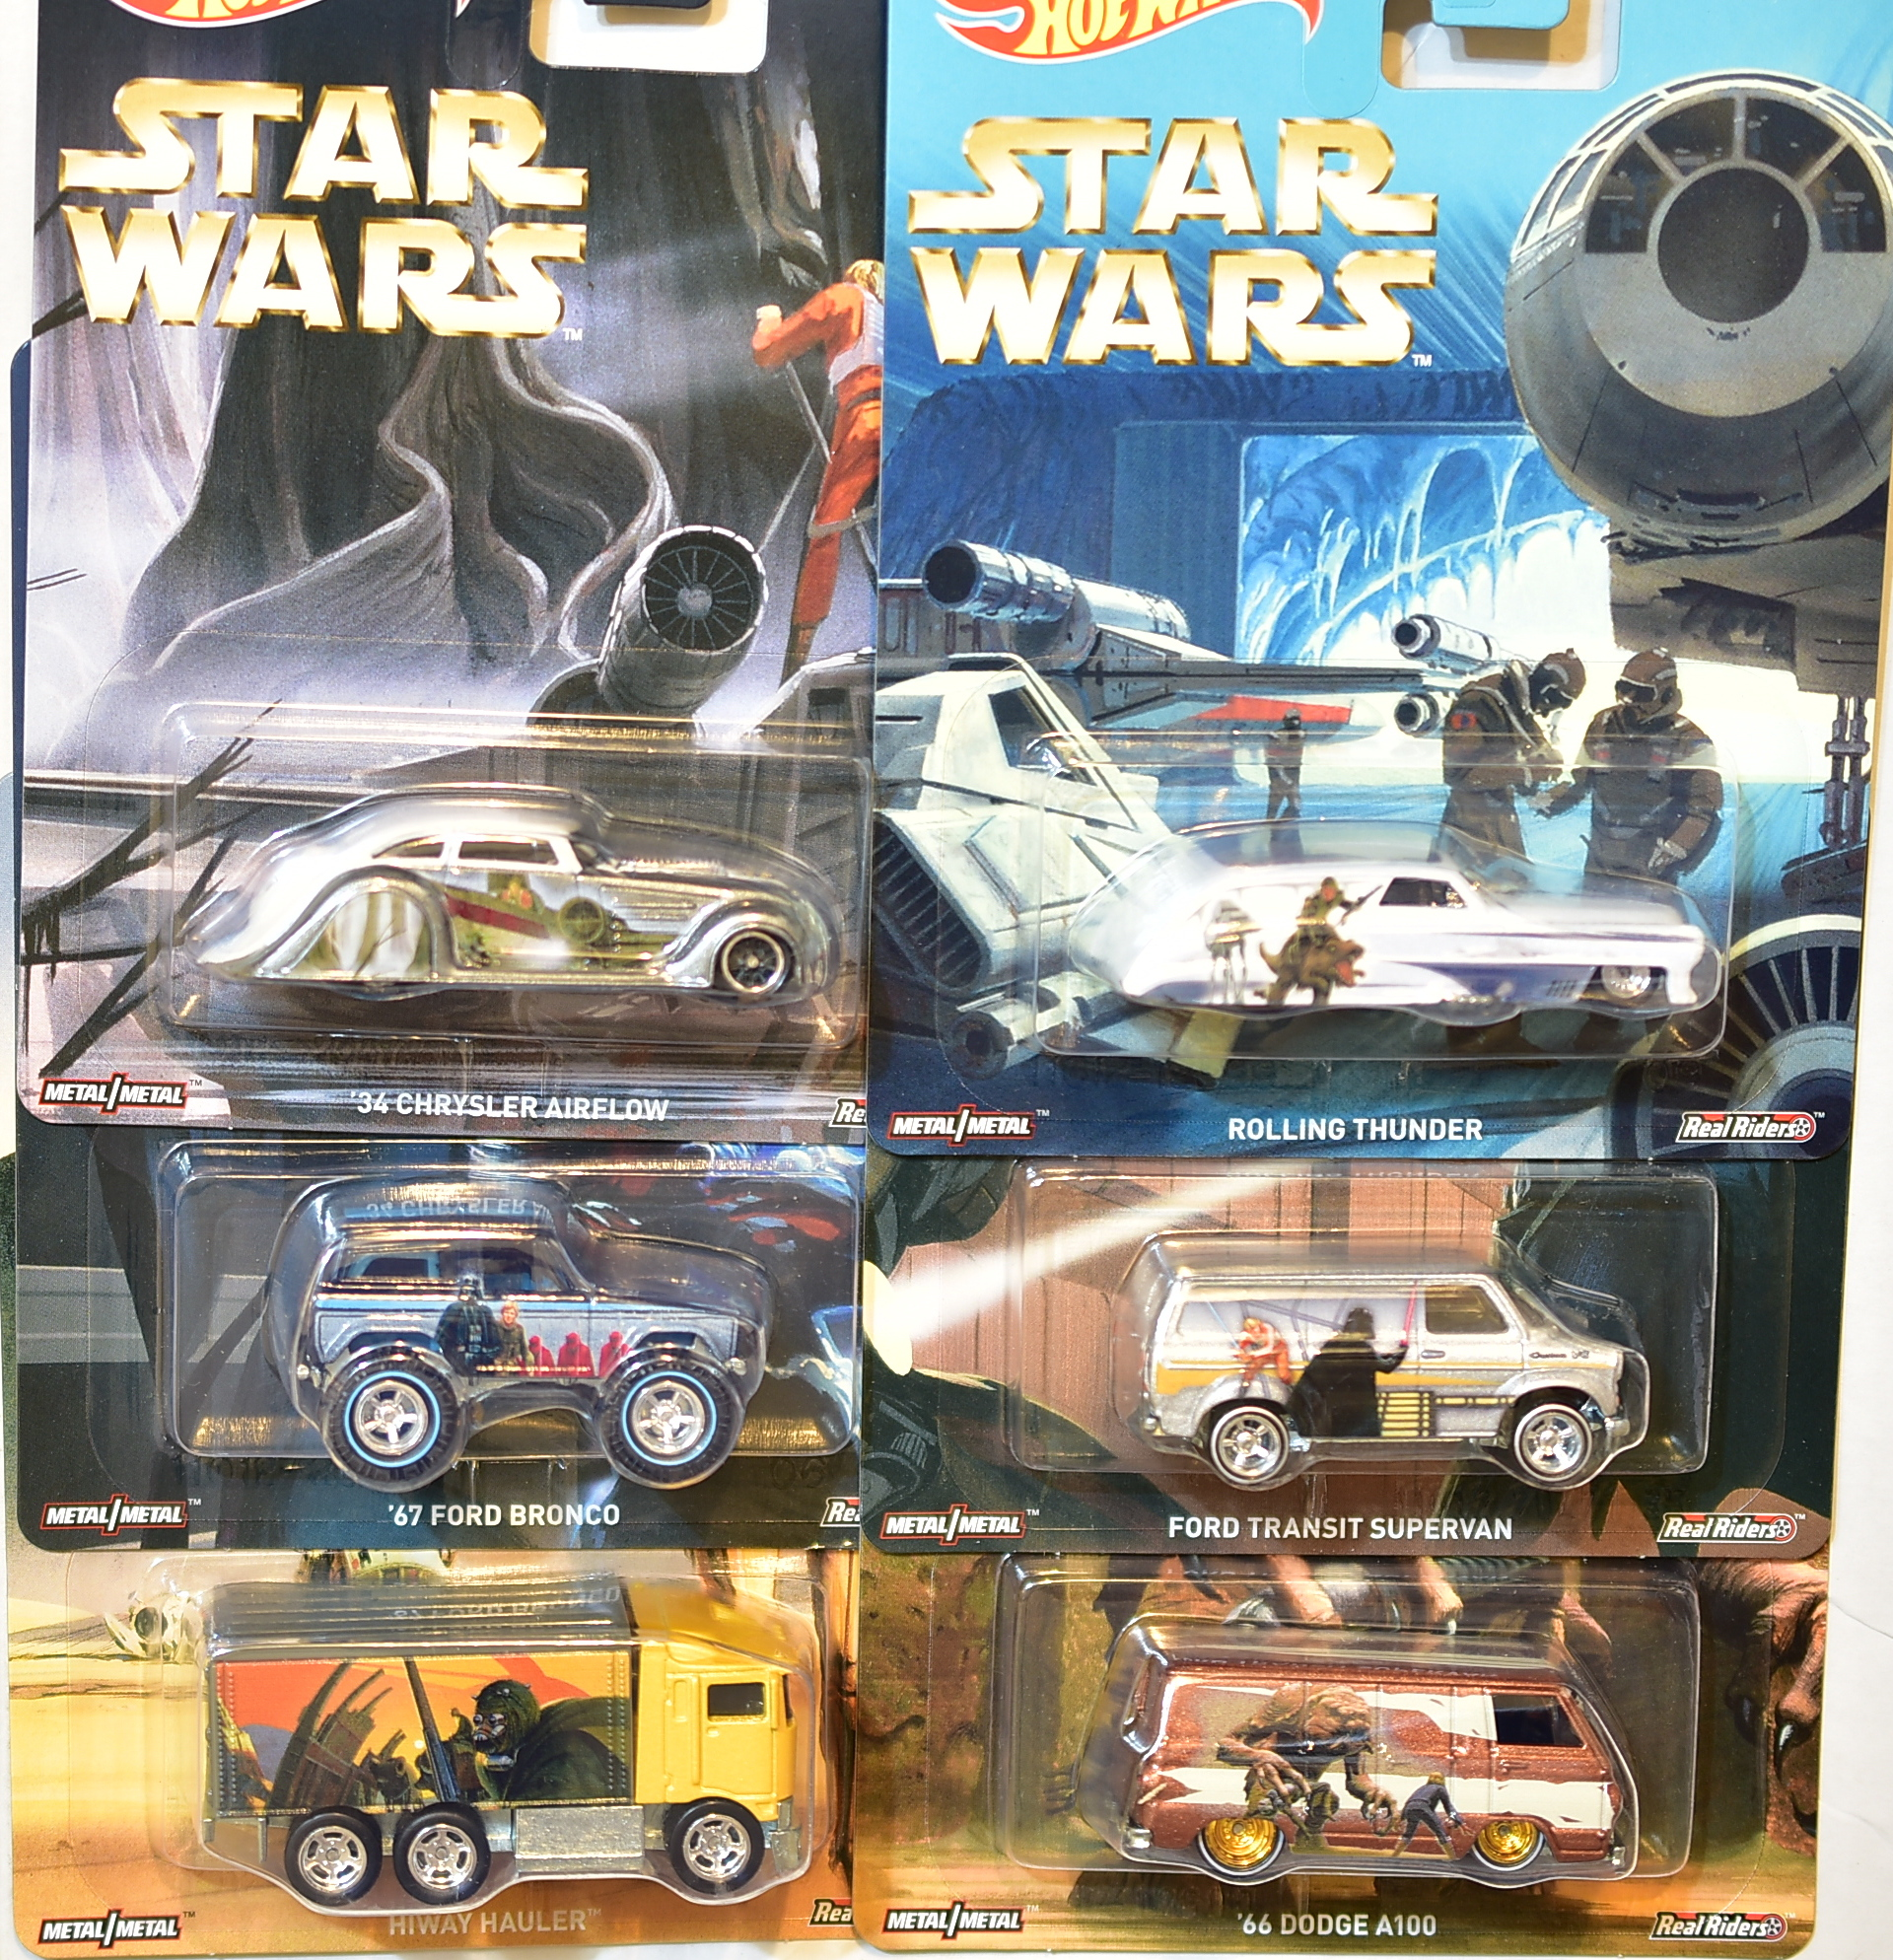 HOT-WHEELS-POP-CULTURE-STAR-WARS-SET-OF-6-66-DODGE-HAULER-SUPER-VAN